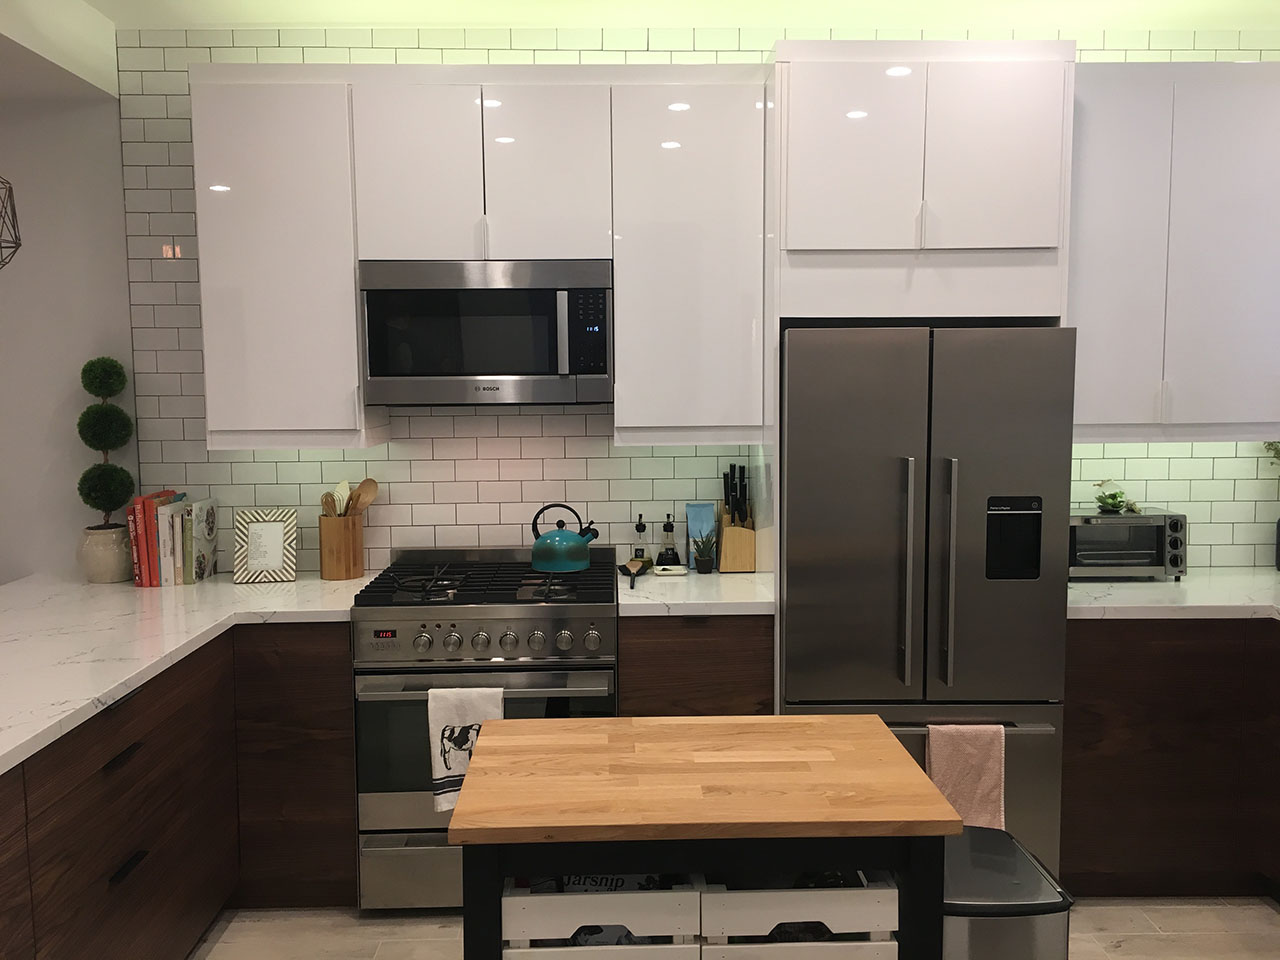 Uncategorized Who Makes Ikea Kitchen Appliances 5 things to remember when choosing kitchen appliances ikea mid century modern 6